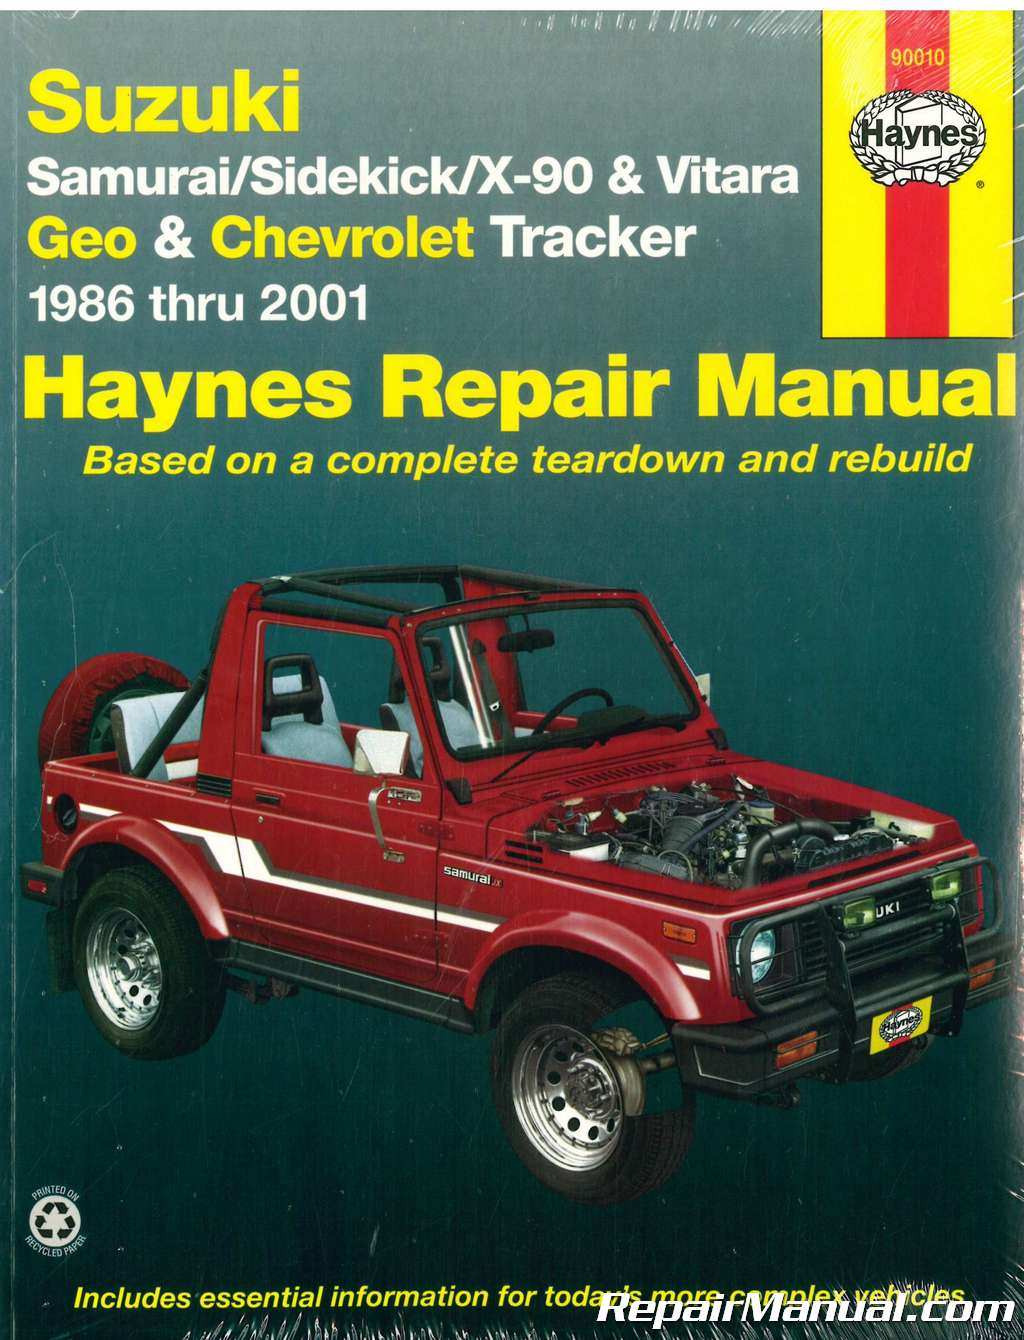 suzuki samurai sidekick x 90 vitara chevrolet geo tracker 1986 2001 rh repairmanual com suzuki sidekick repair manual free download suzuki sidekick repair manual pdf